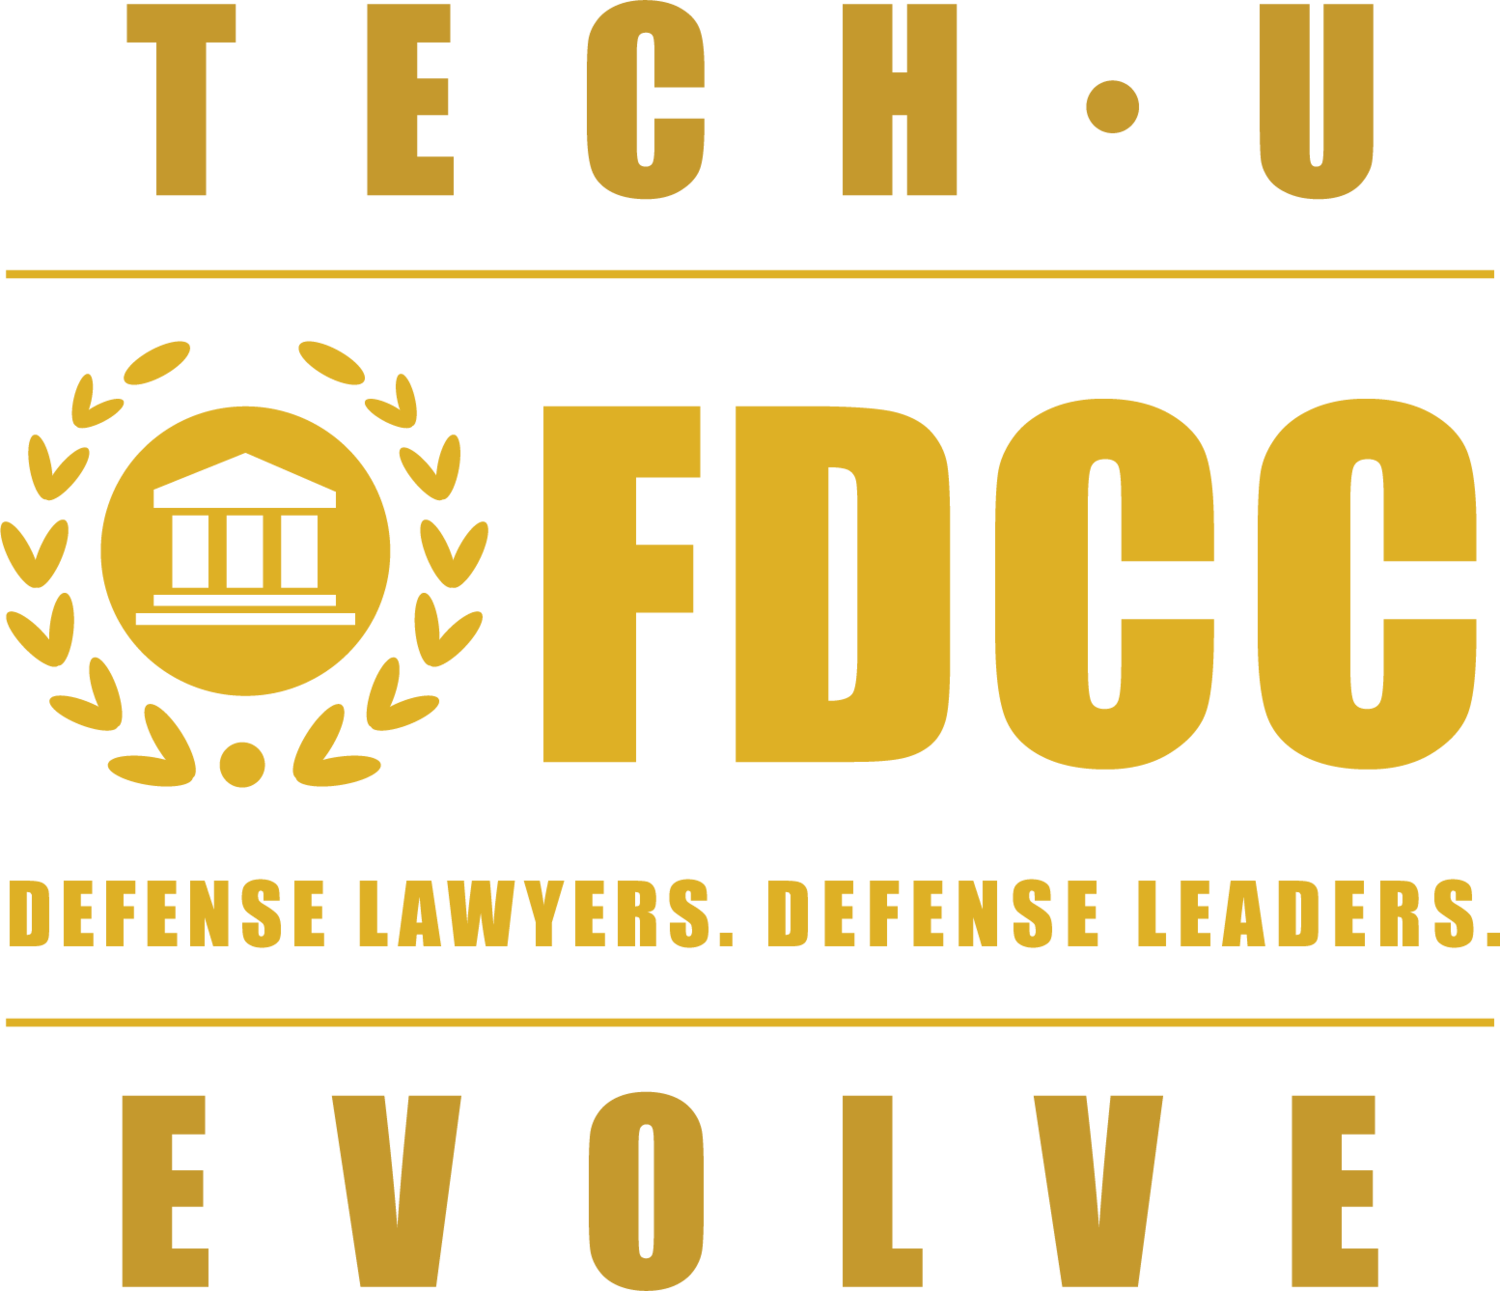 FDCC EVOLVE